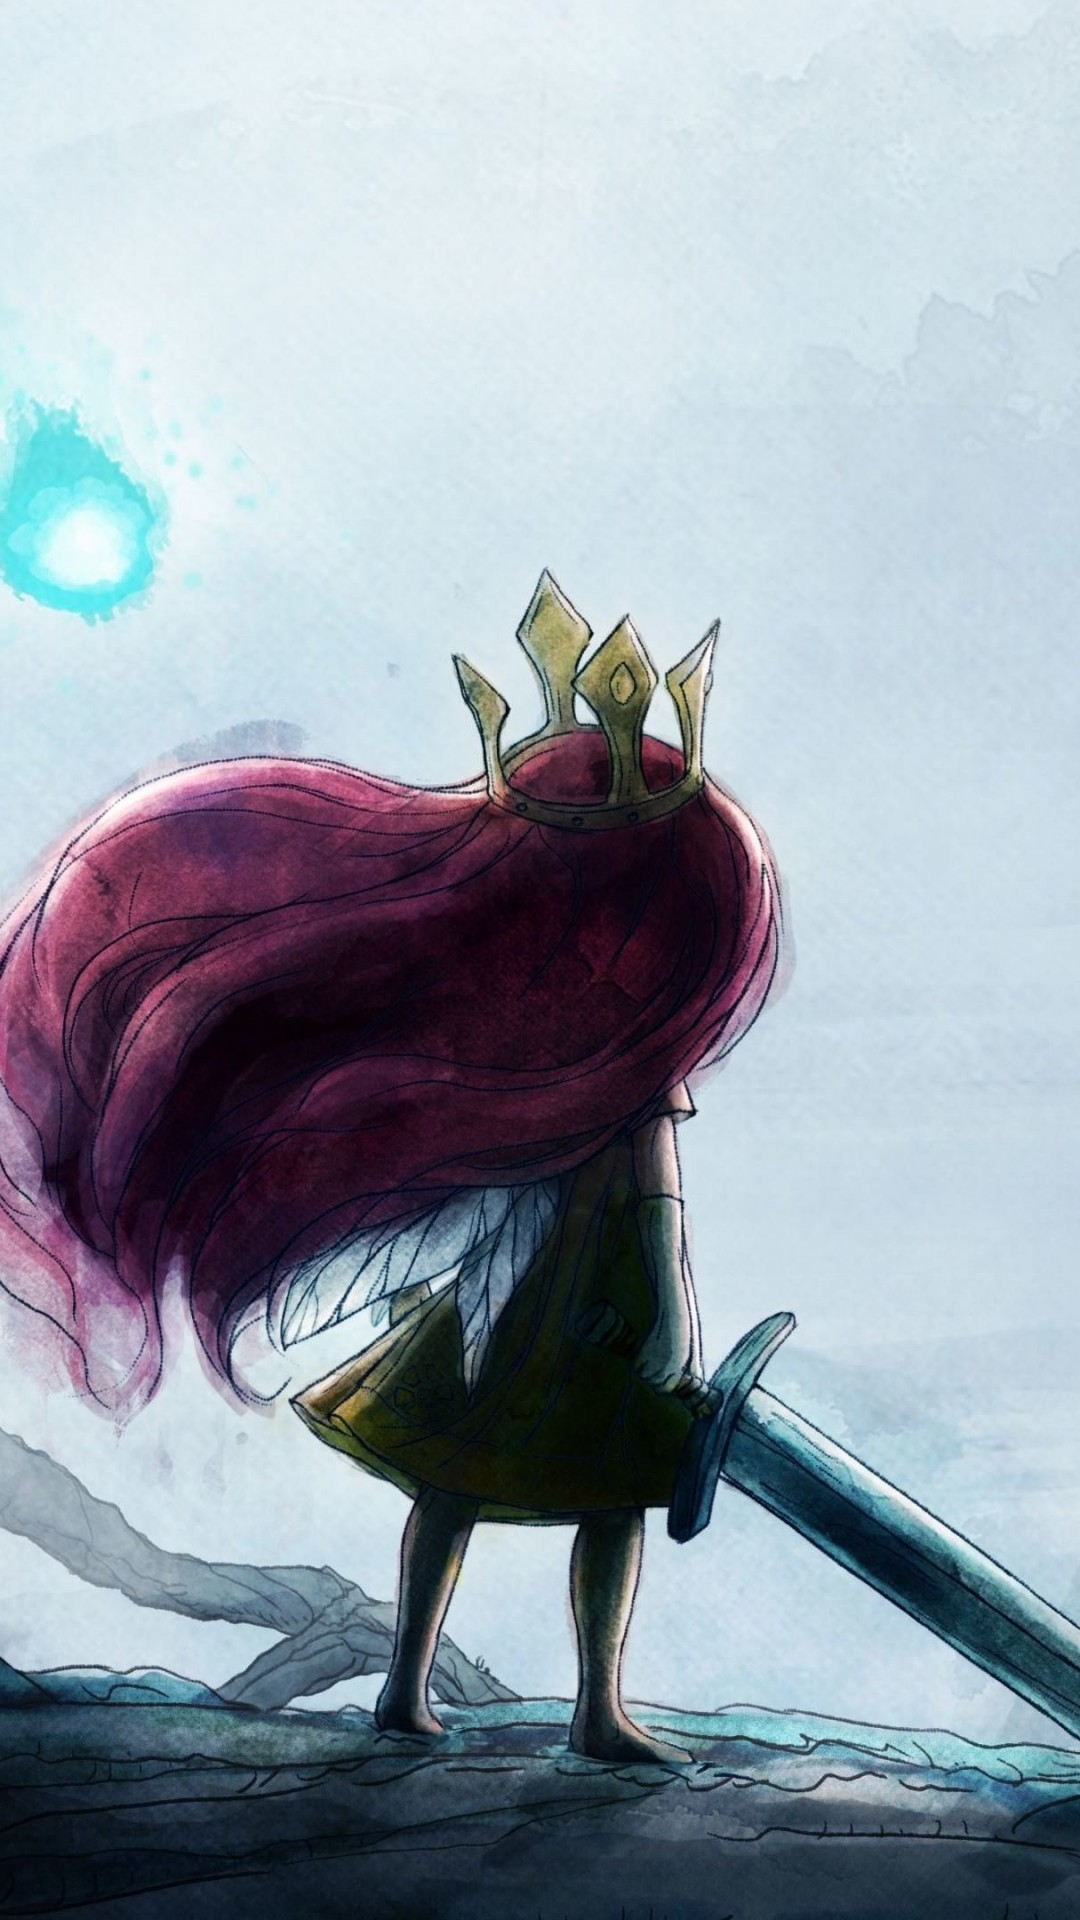 Child Of Light Wallpaper for SAMSUNG Galaxy S5